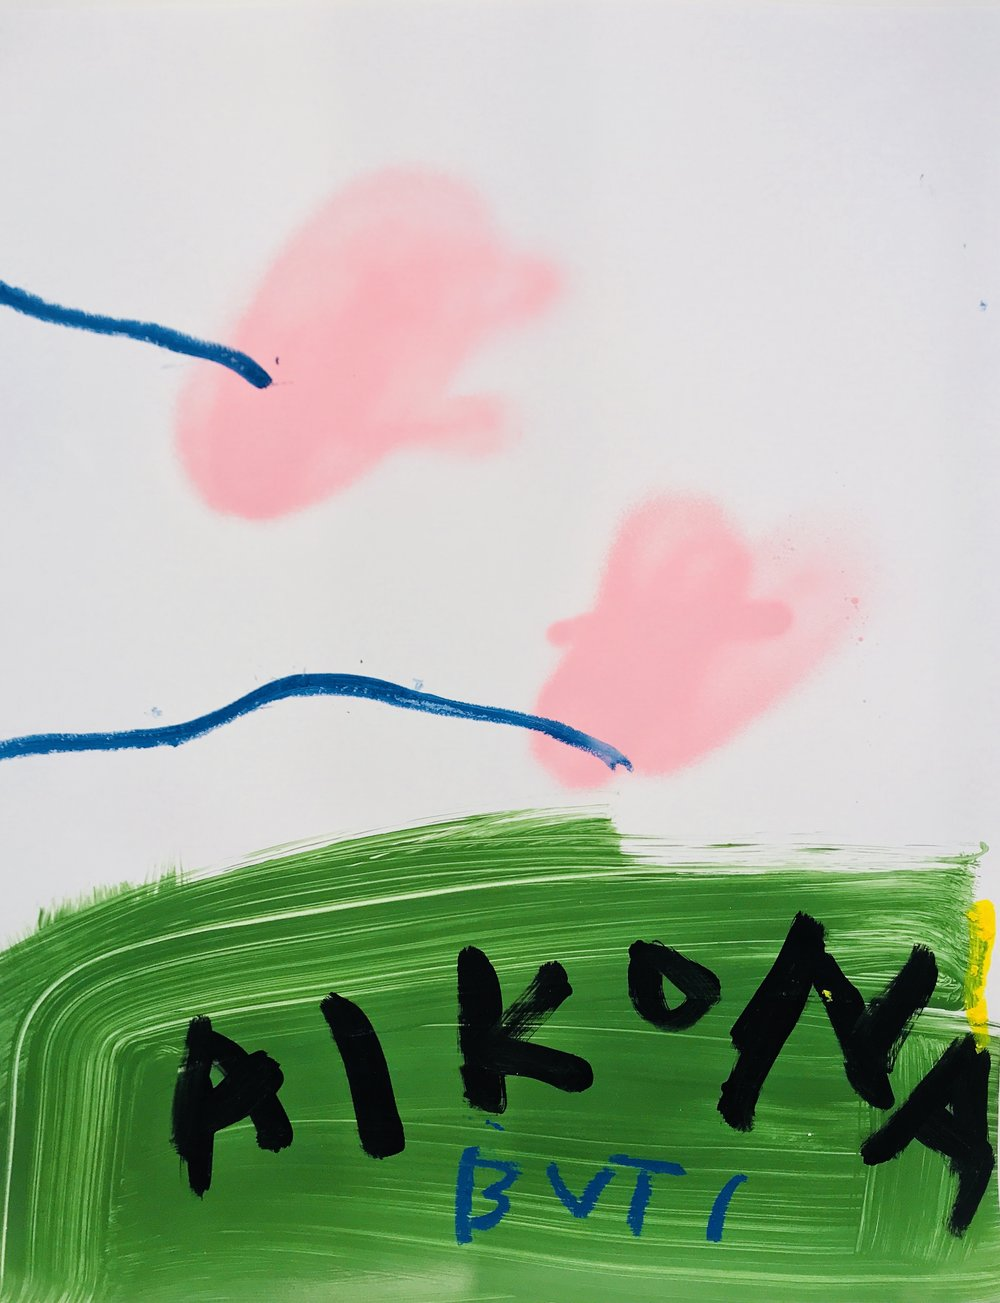 Aikona, 2018 Acrylic and spray paint on paper, 24 x 18 inches.